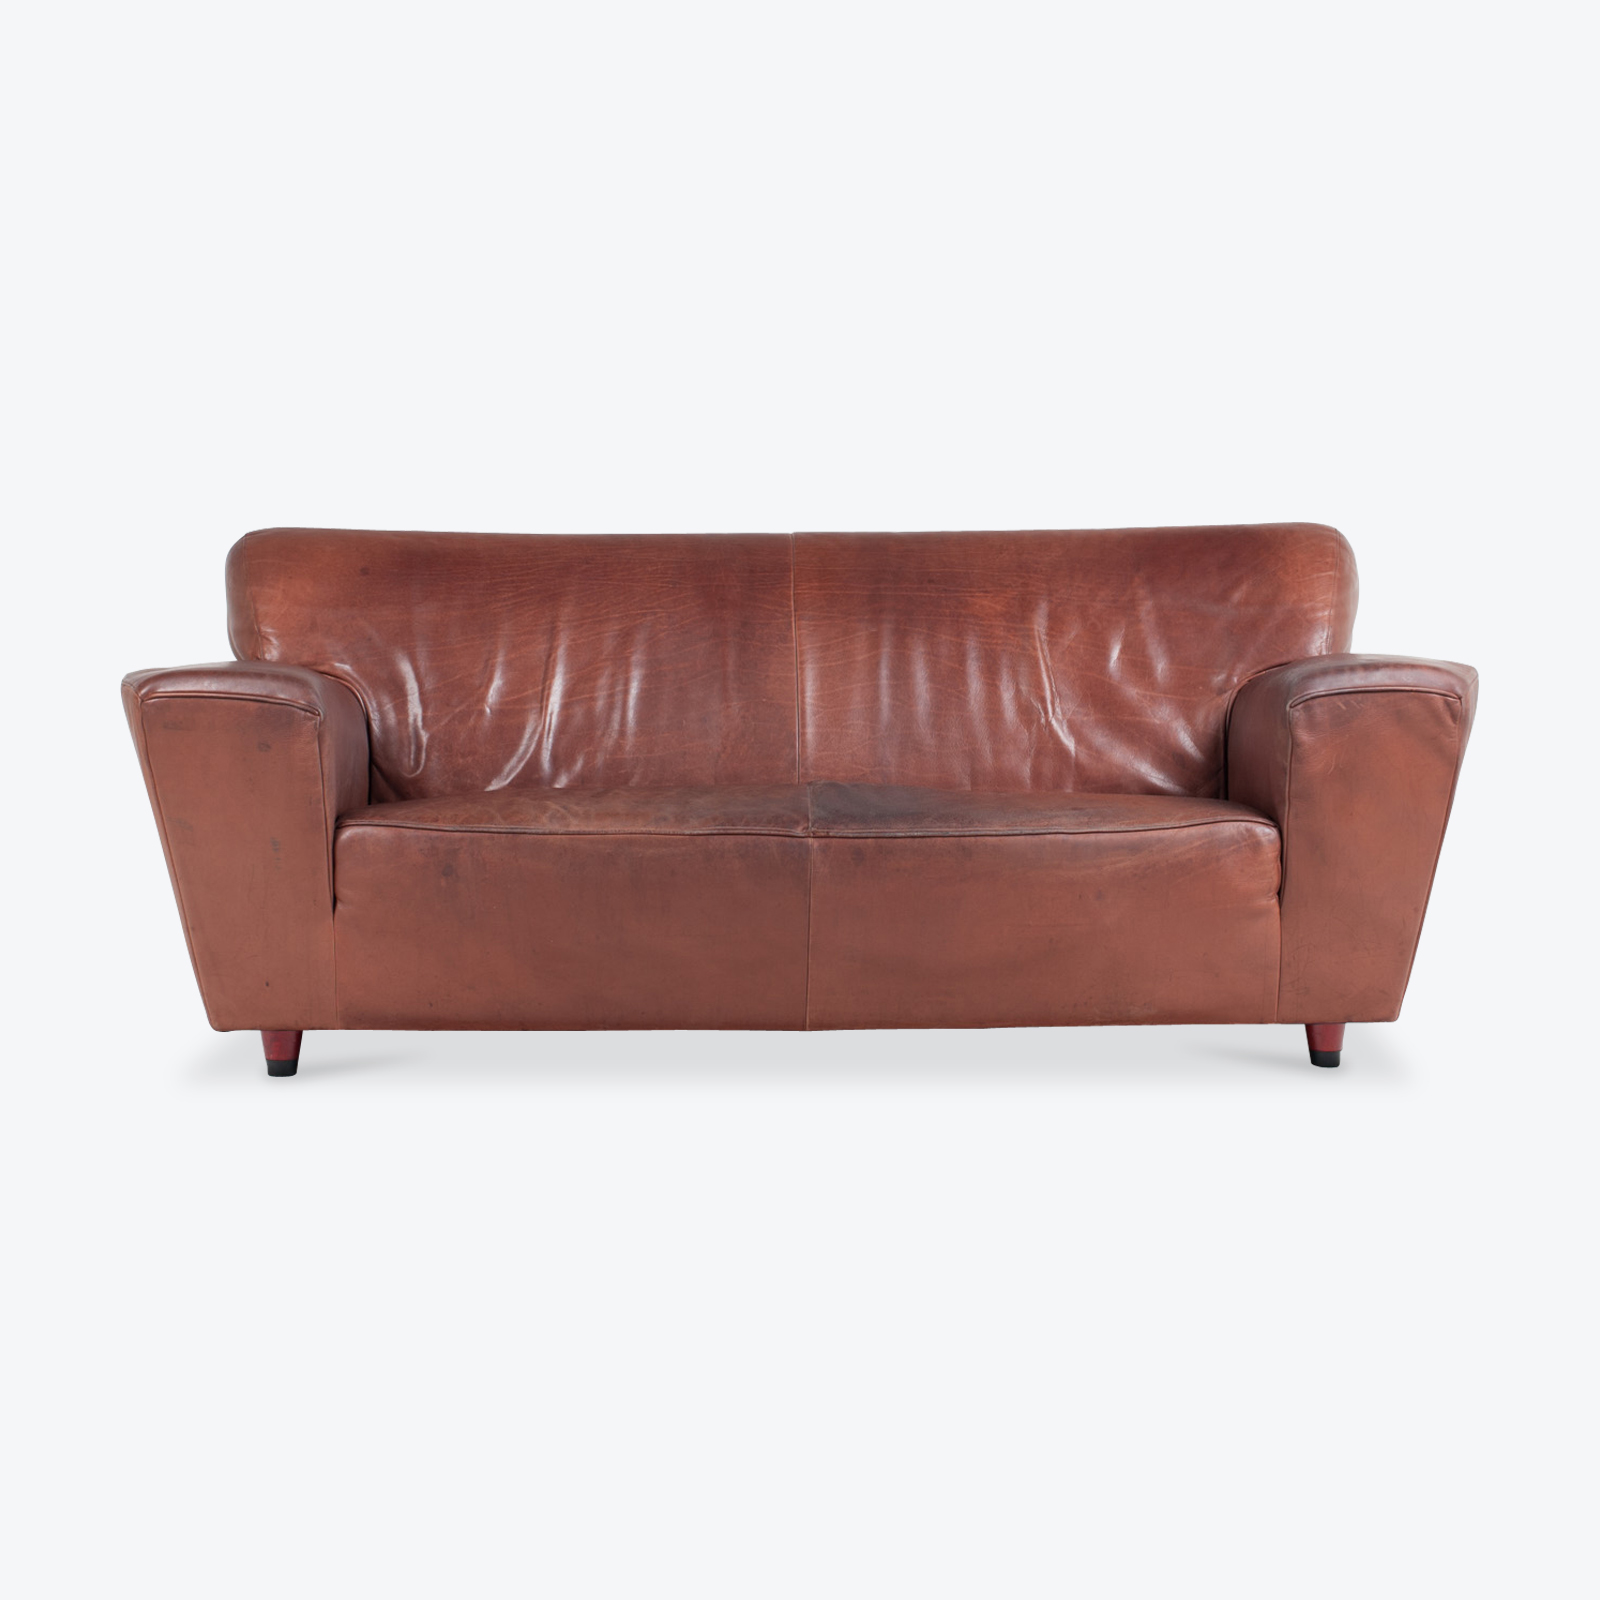 3 Seat Sofa By Montis In Red Leather 1960s Netherlands